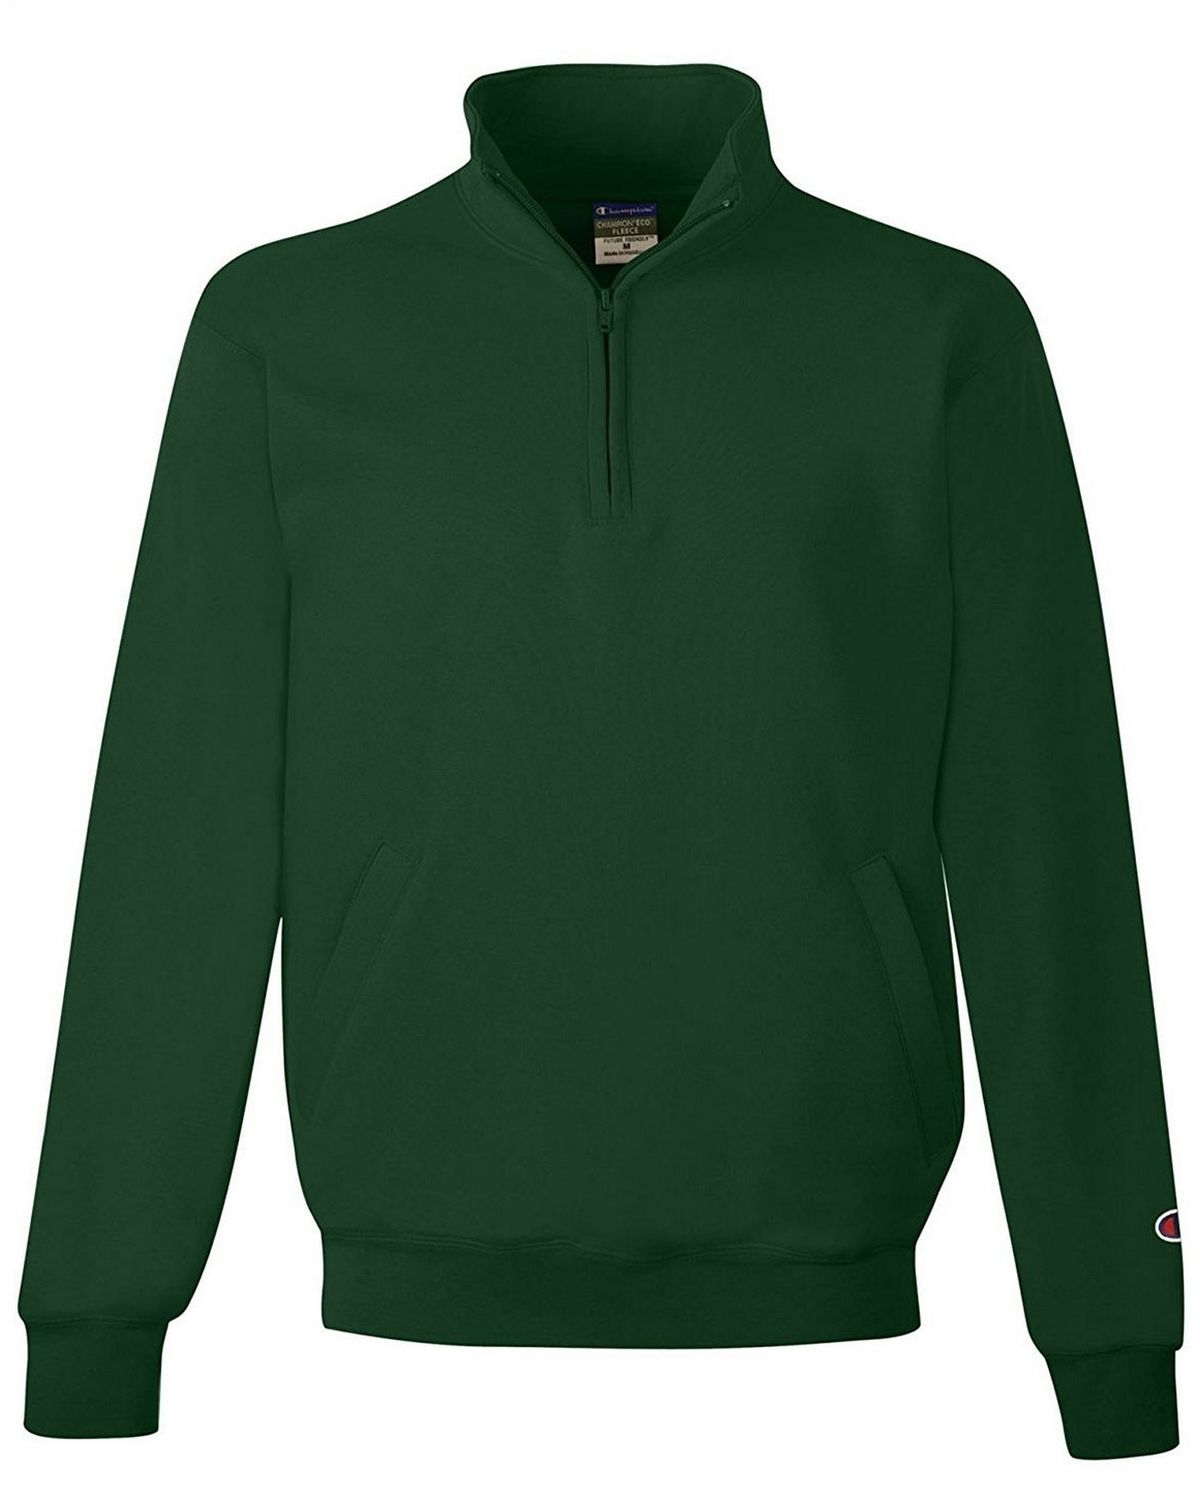 Champion S400 Eco Fleece 1/4 Zip - Navy - XL S400